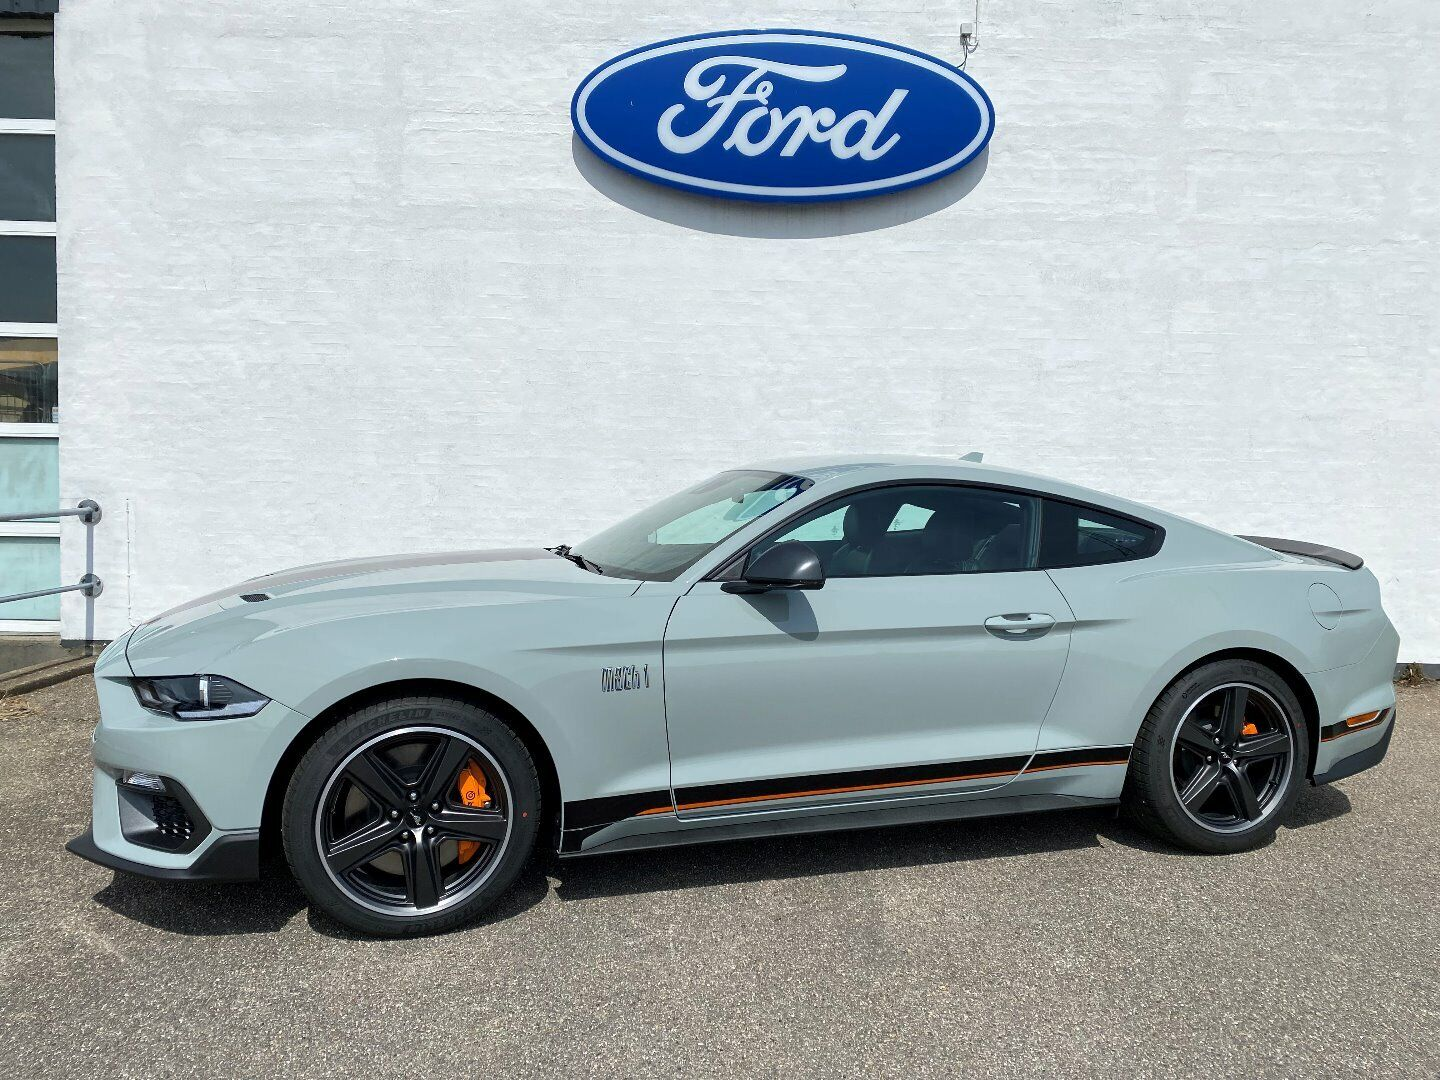 Ford Mustang 5,0 V8 GT Fastback Mach 1 2d